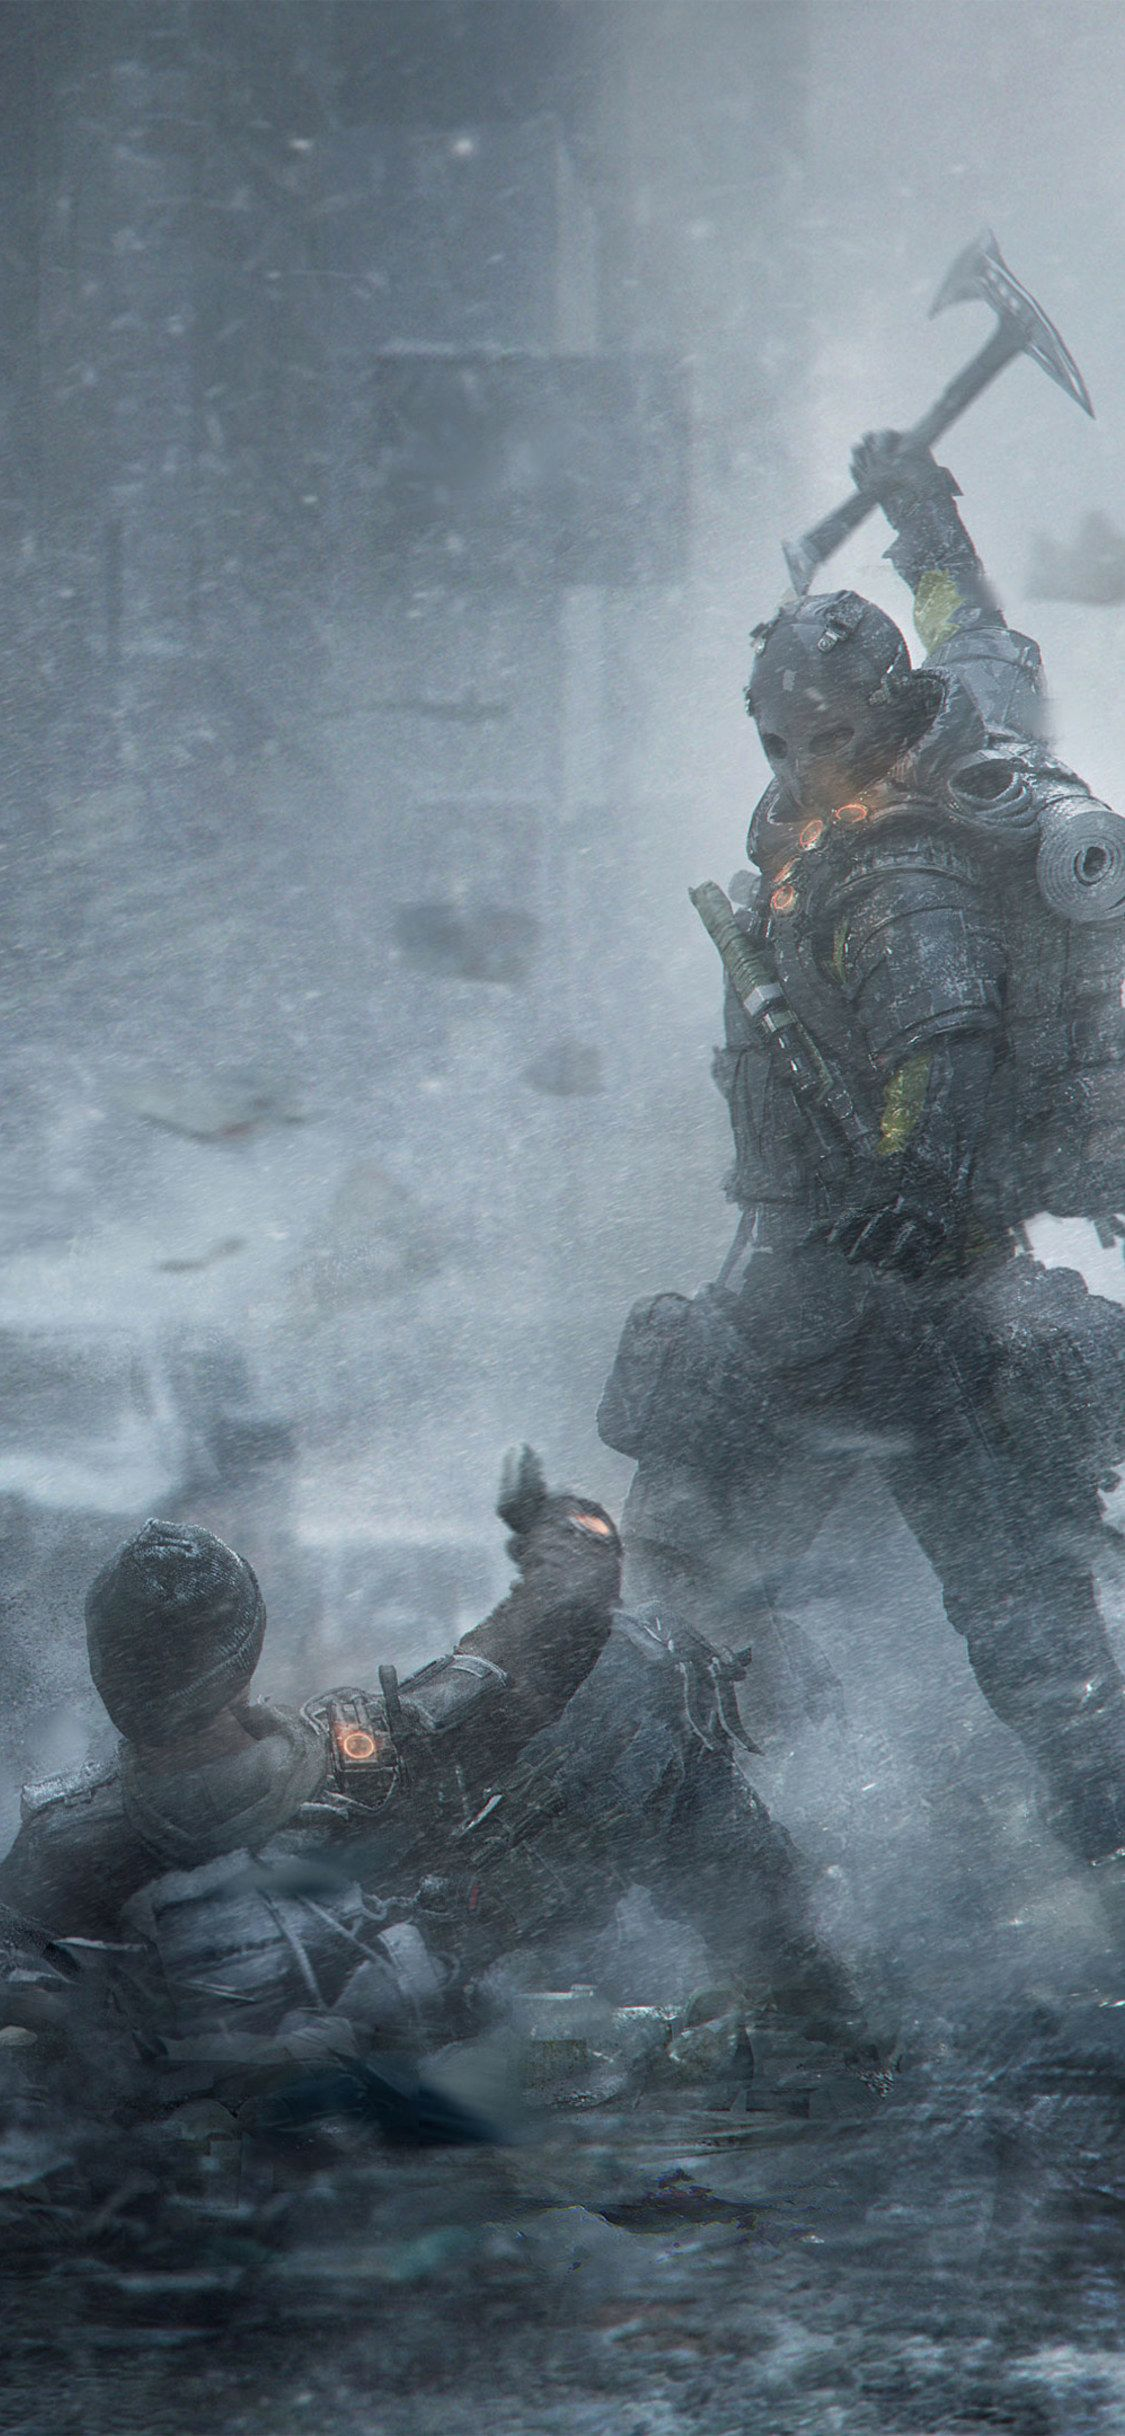 1125x2436 1125x2436 Tom Clancys The Division Survival Artwork Iphone XS,Iphone ...